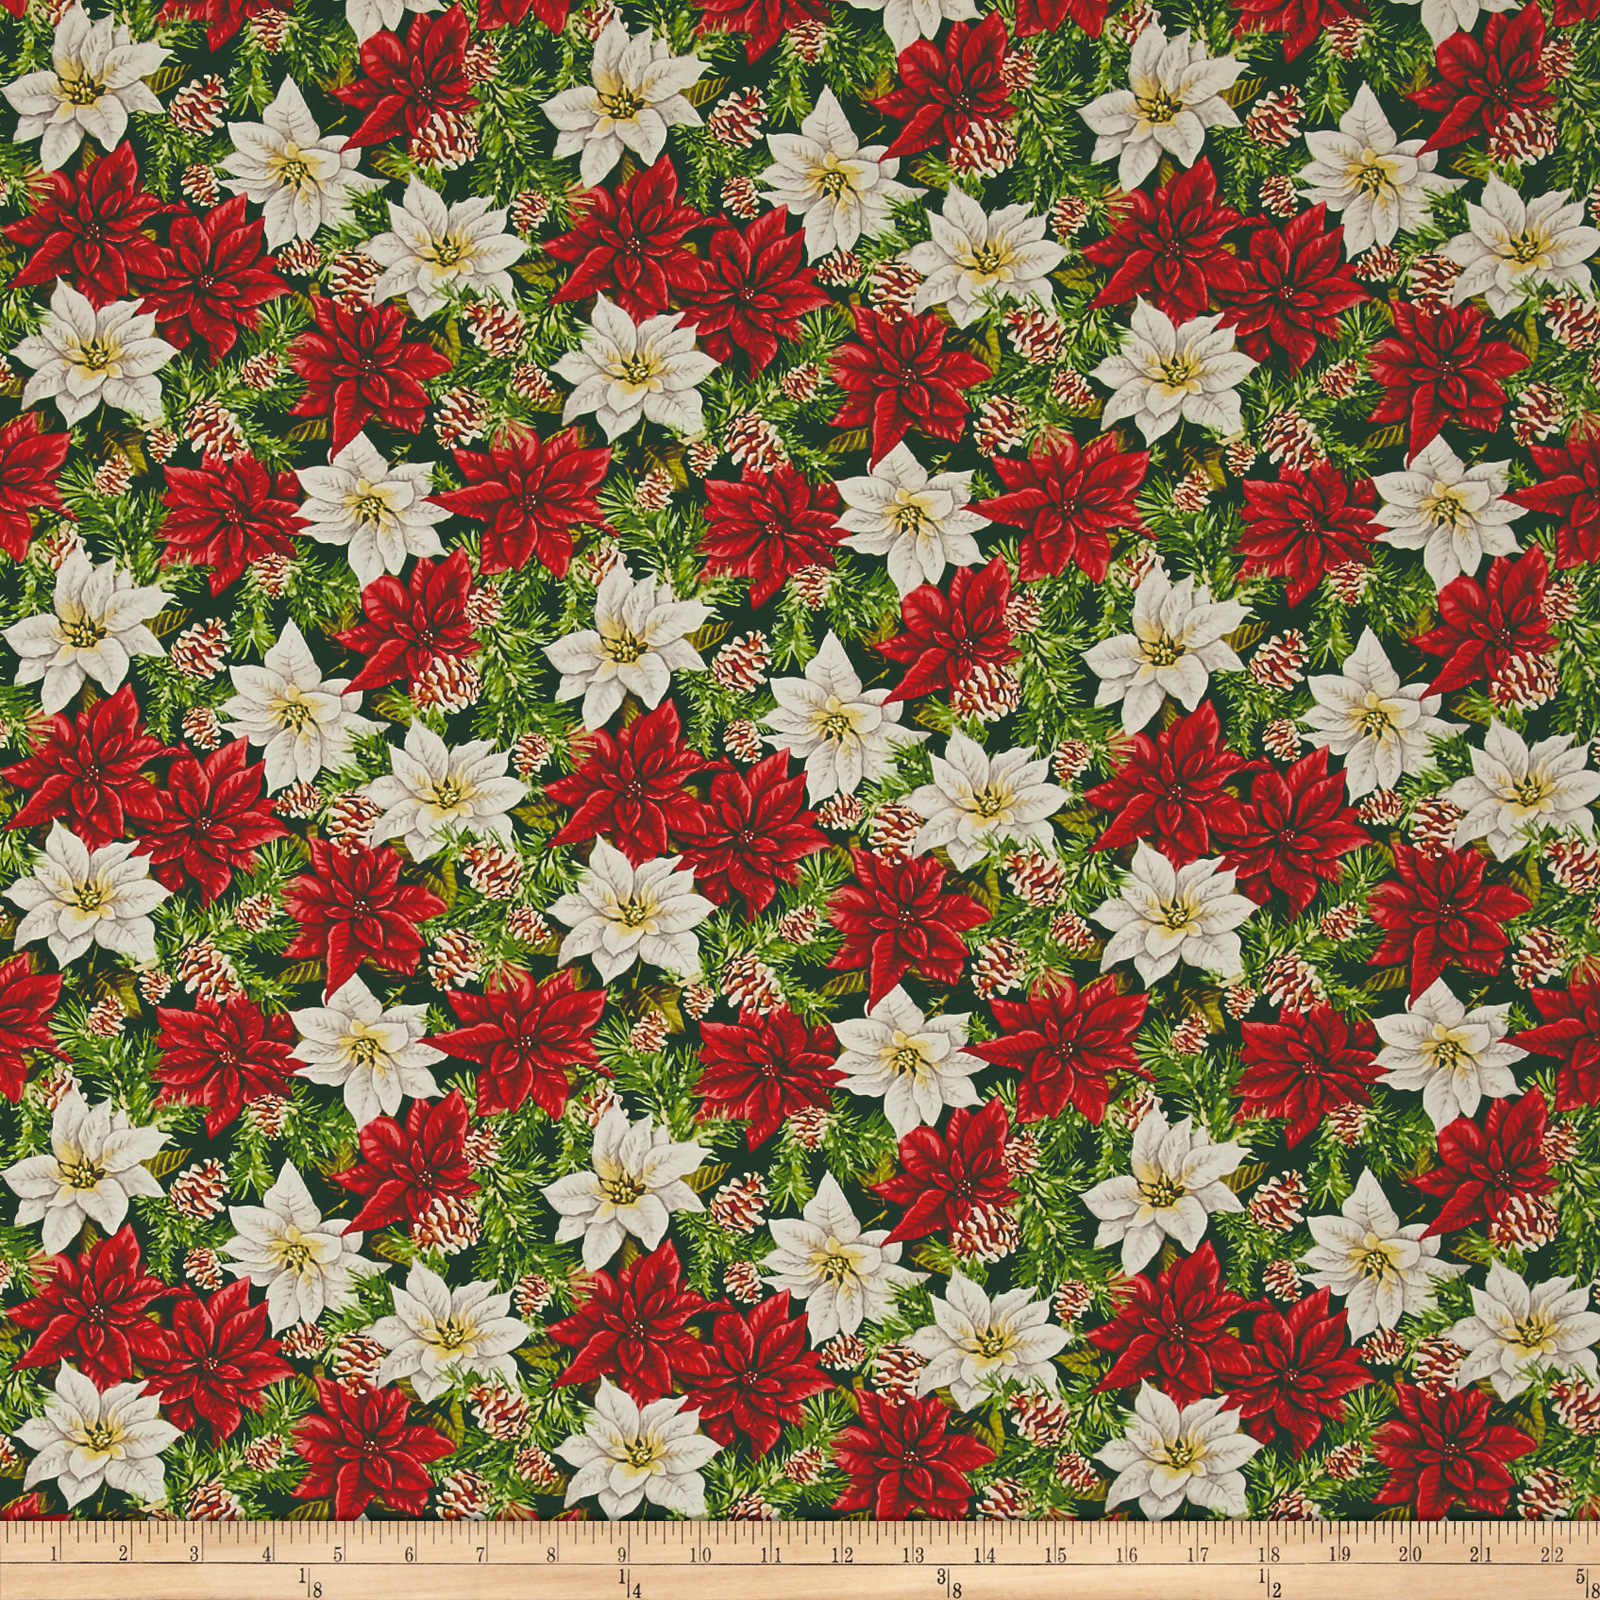 INOpets.com Anything for Pets Parents & Their Pets Anne of Green Gables Poinsettias Green Fabric